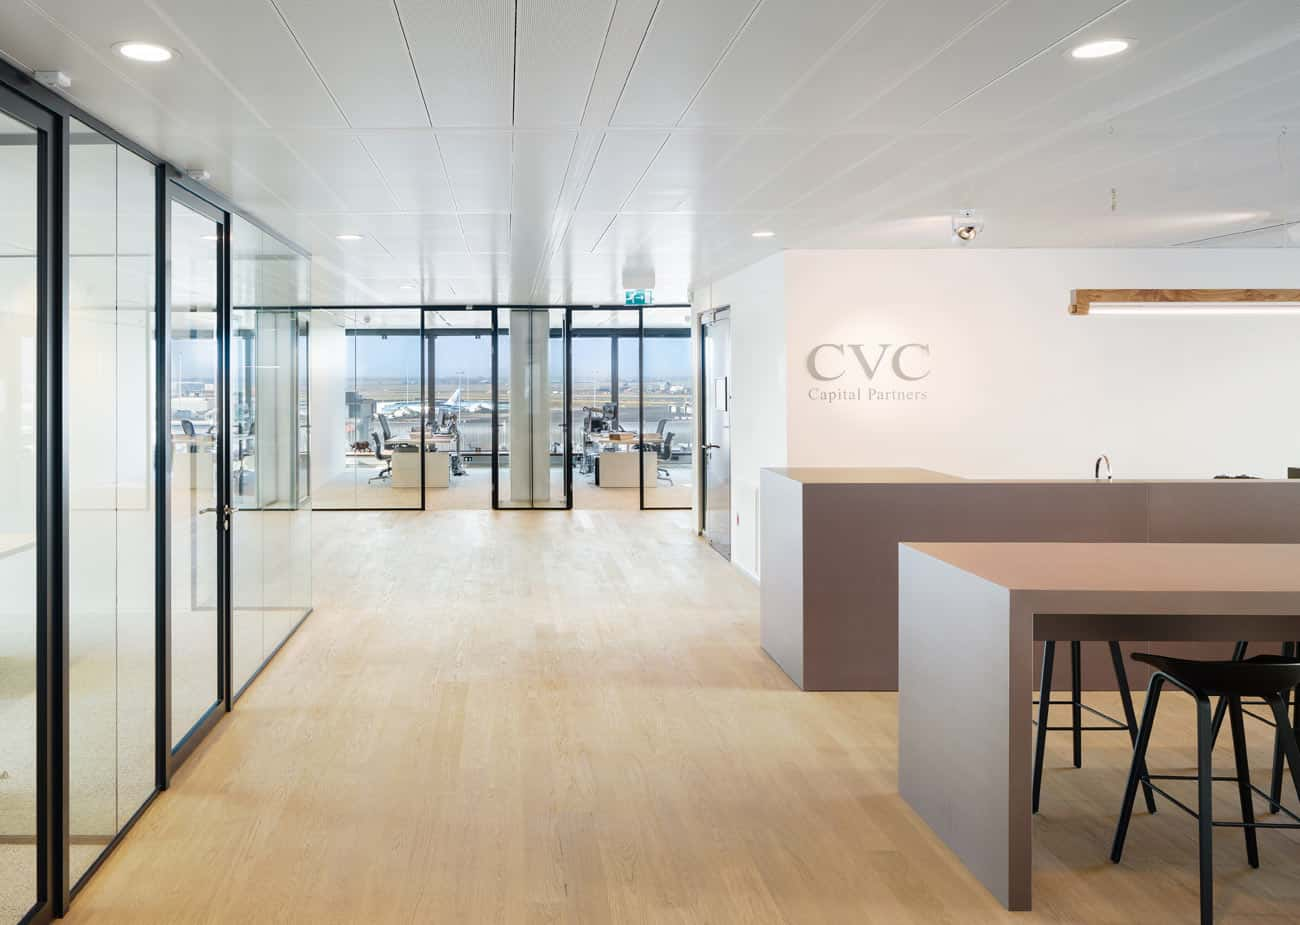 CVC Capital Partners, Schiphol | Plan Effect